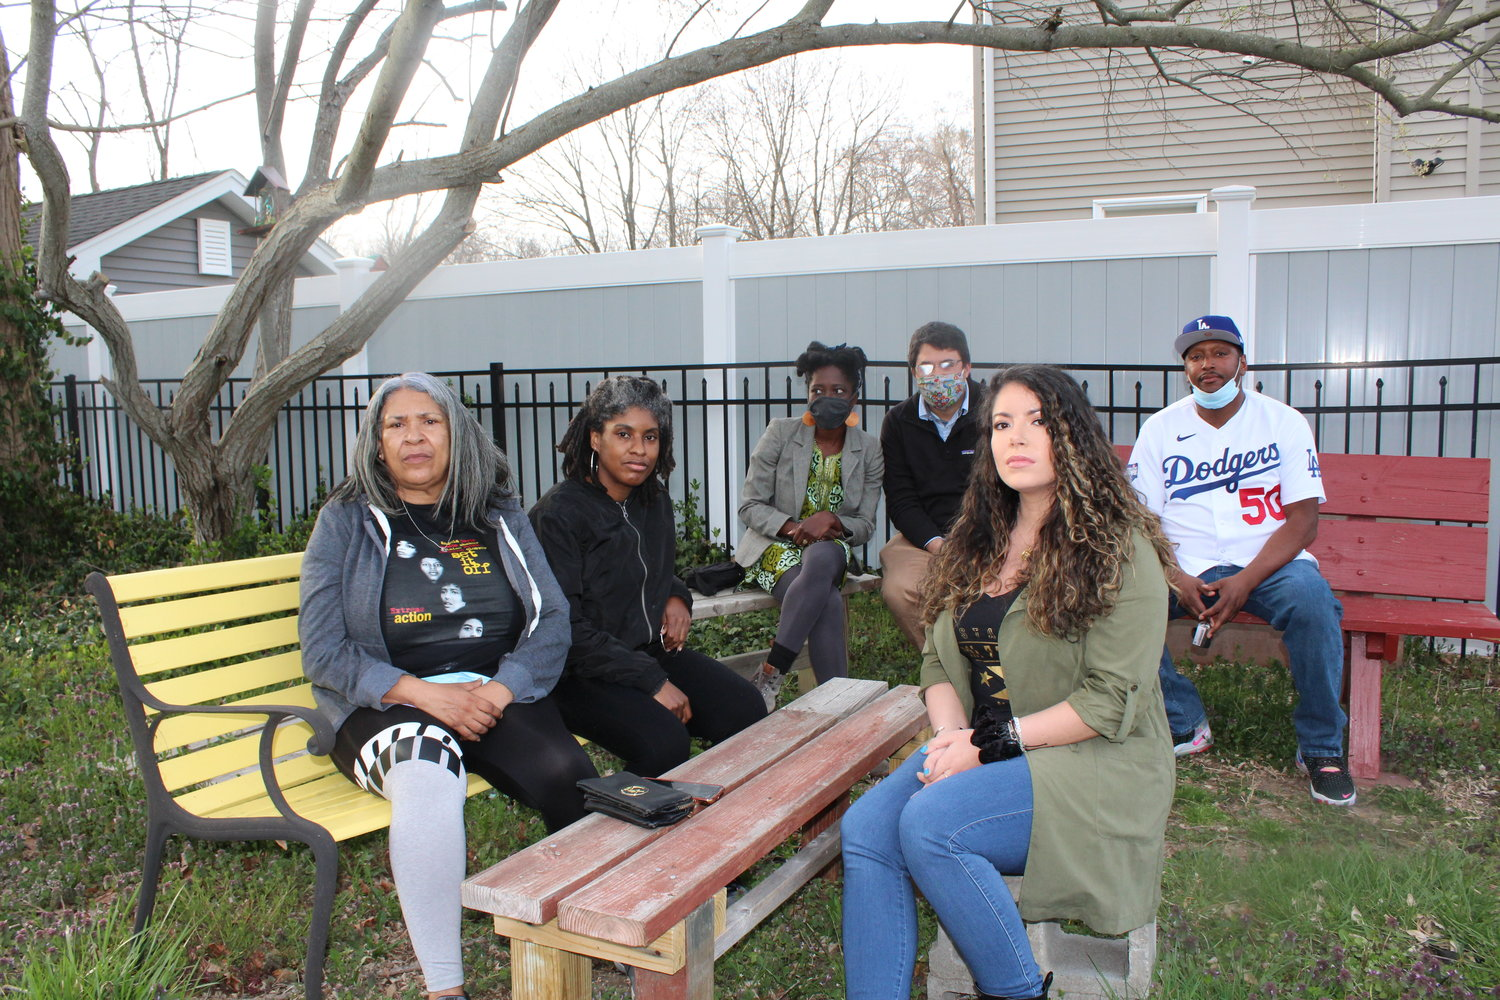 Founders of the Brookhaven Town Landfill Action & Remediation Group want a landfill cleanup and zero-waste plan. They are (left to right) Hannah Thomas, Monique Fitzgerald, Abena Asare, Kerim Odekon, Michele Mendez and Dennis Nix.